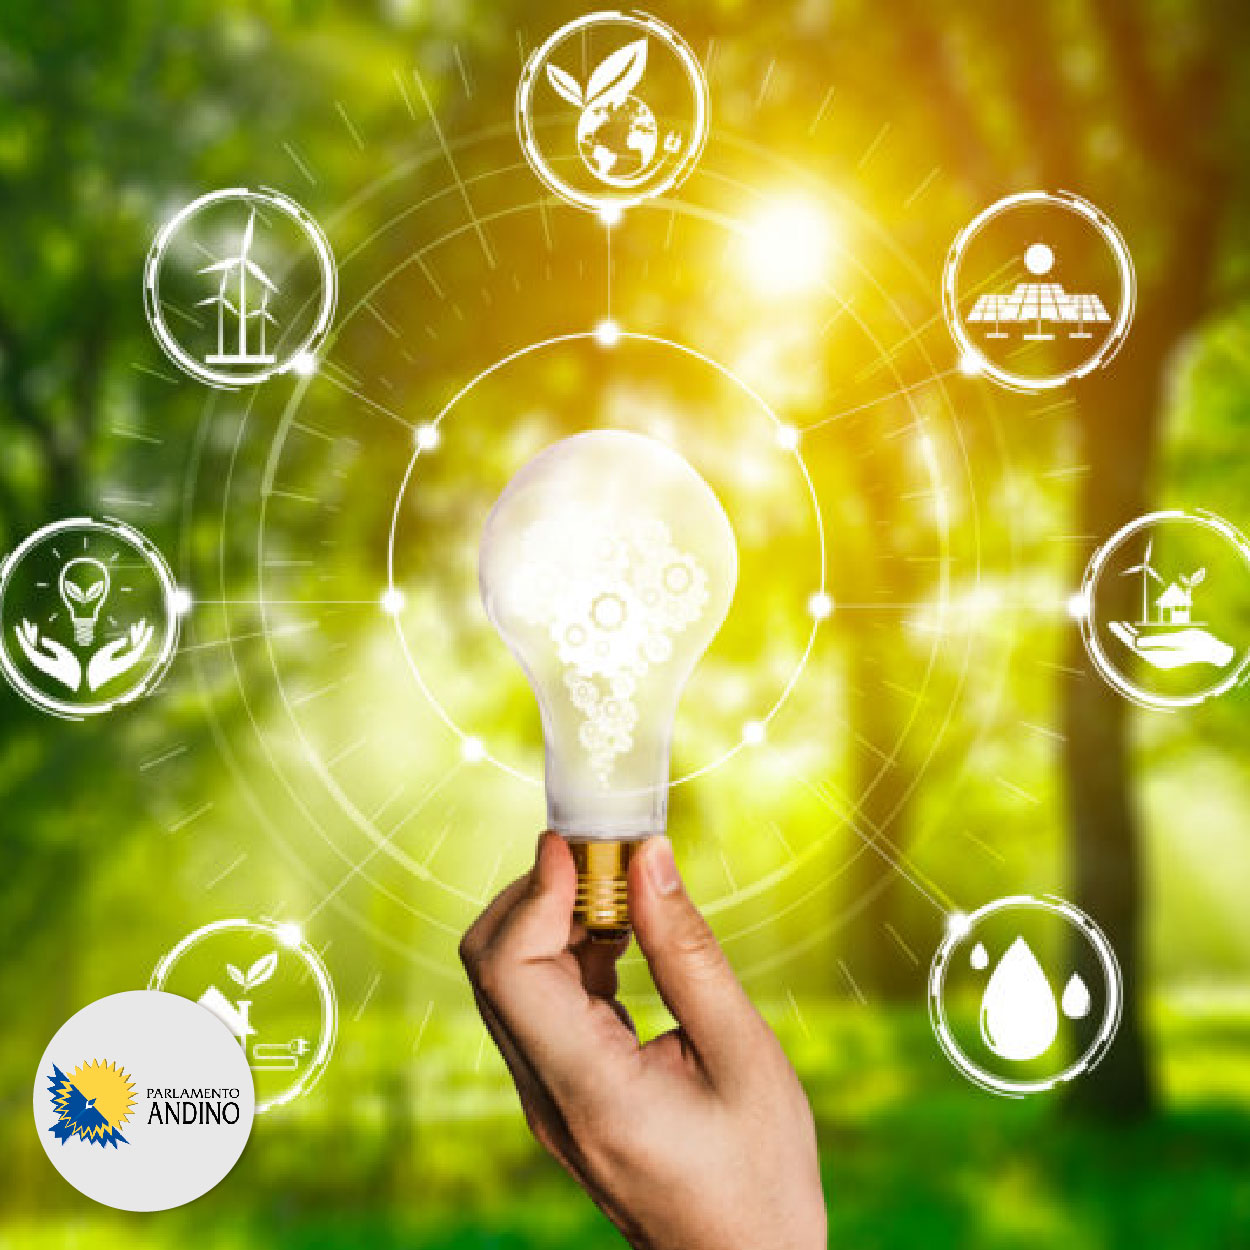 Towards a better use of energy services in the Andean region